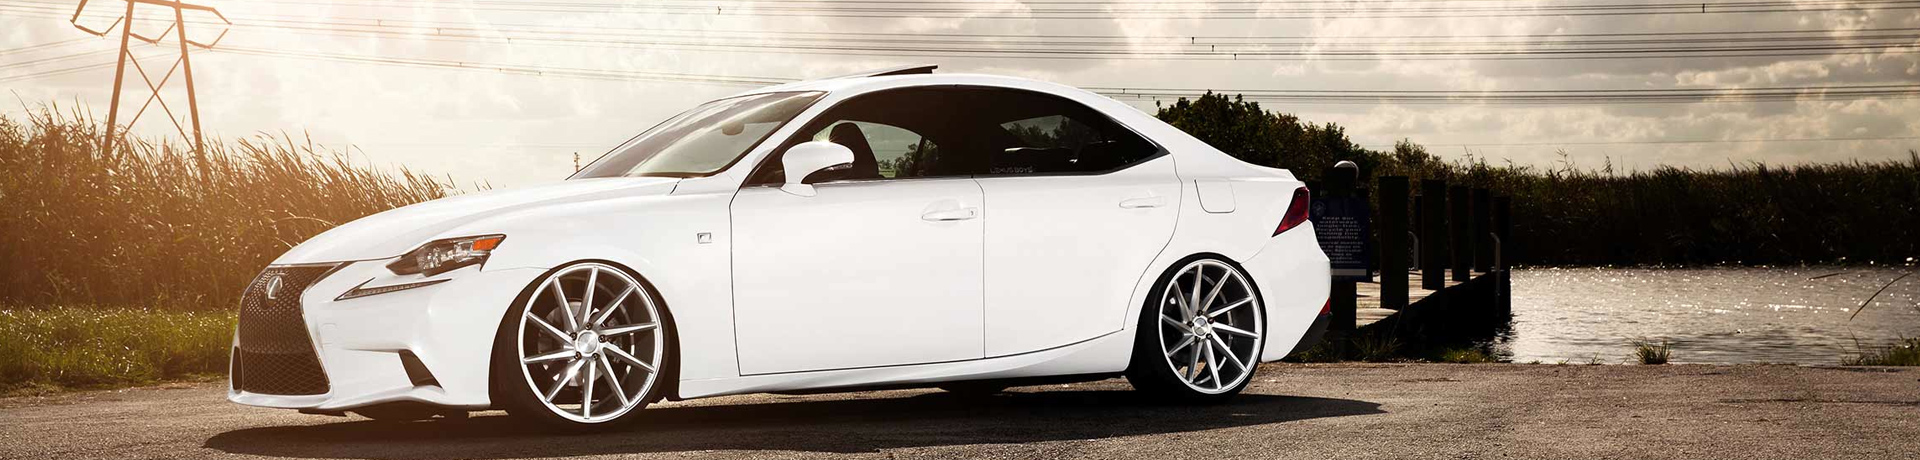 Vossen-Banner-Custom-Wheels